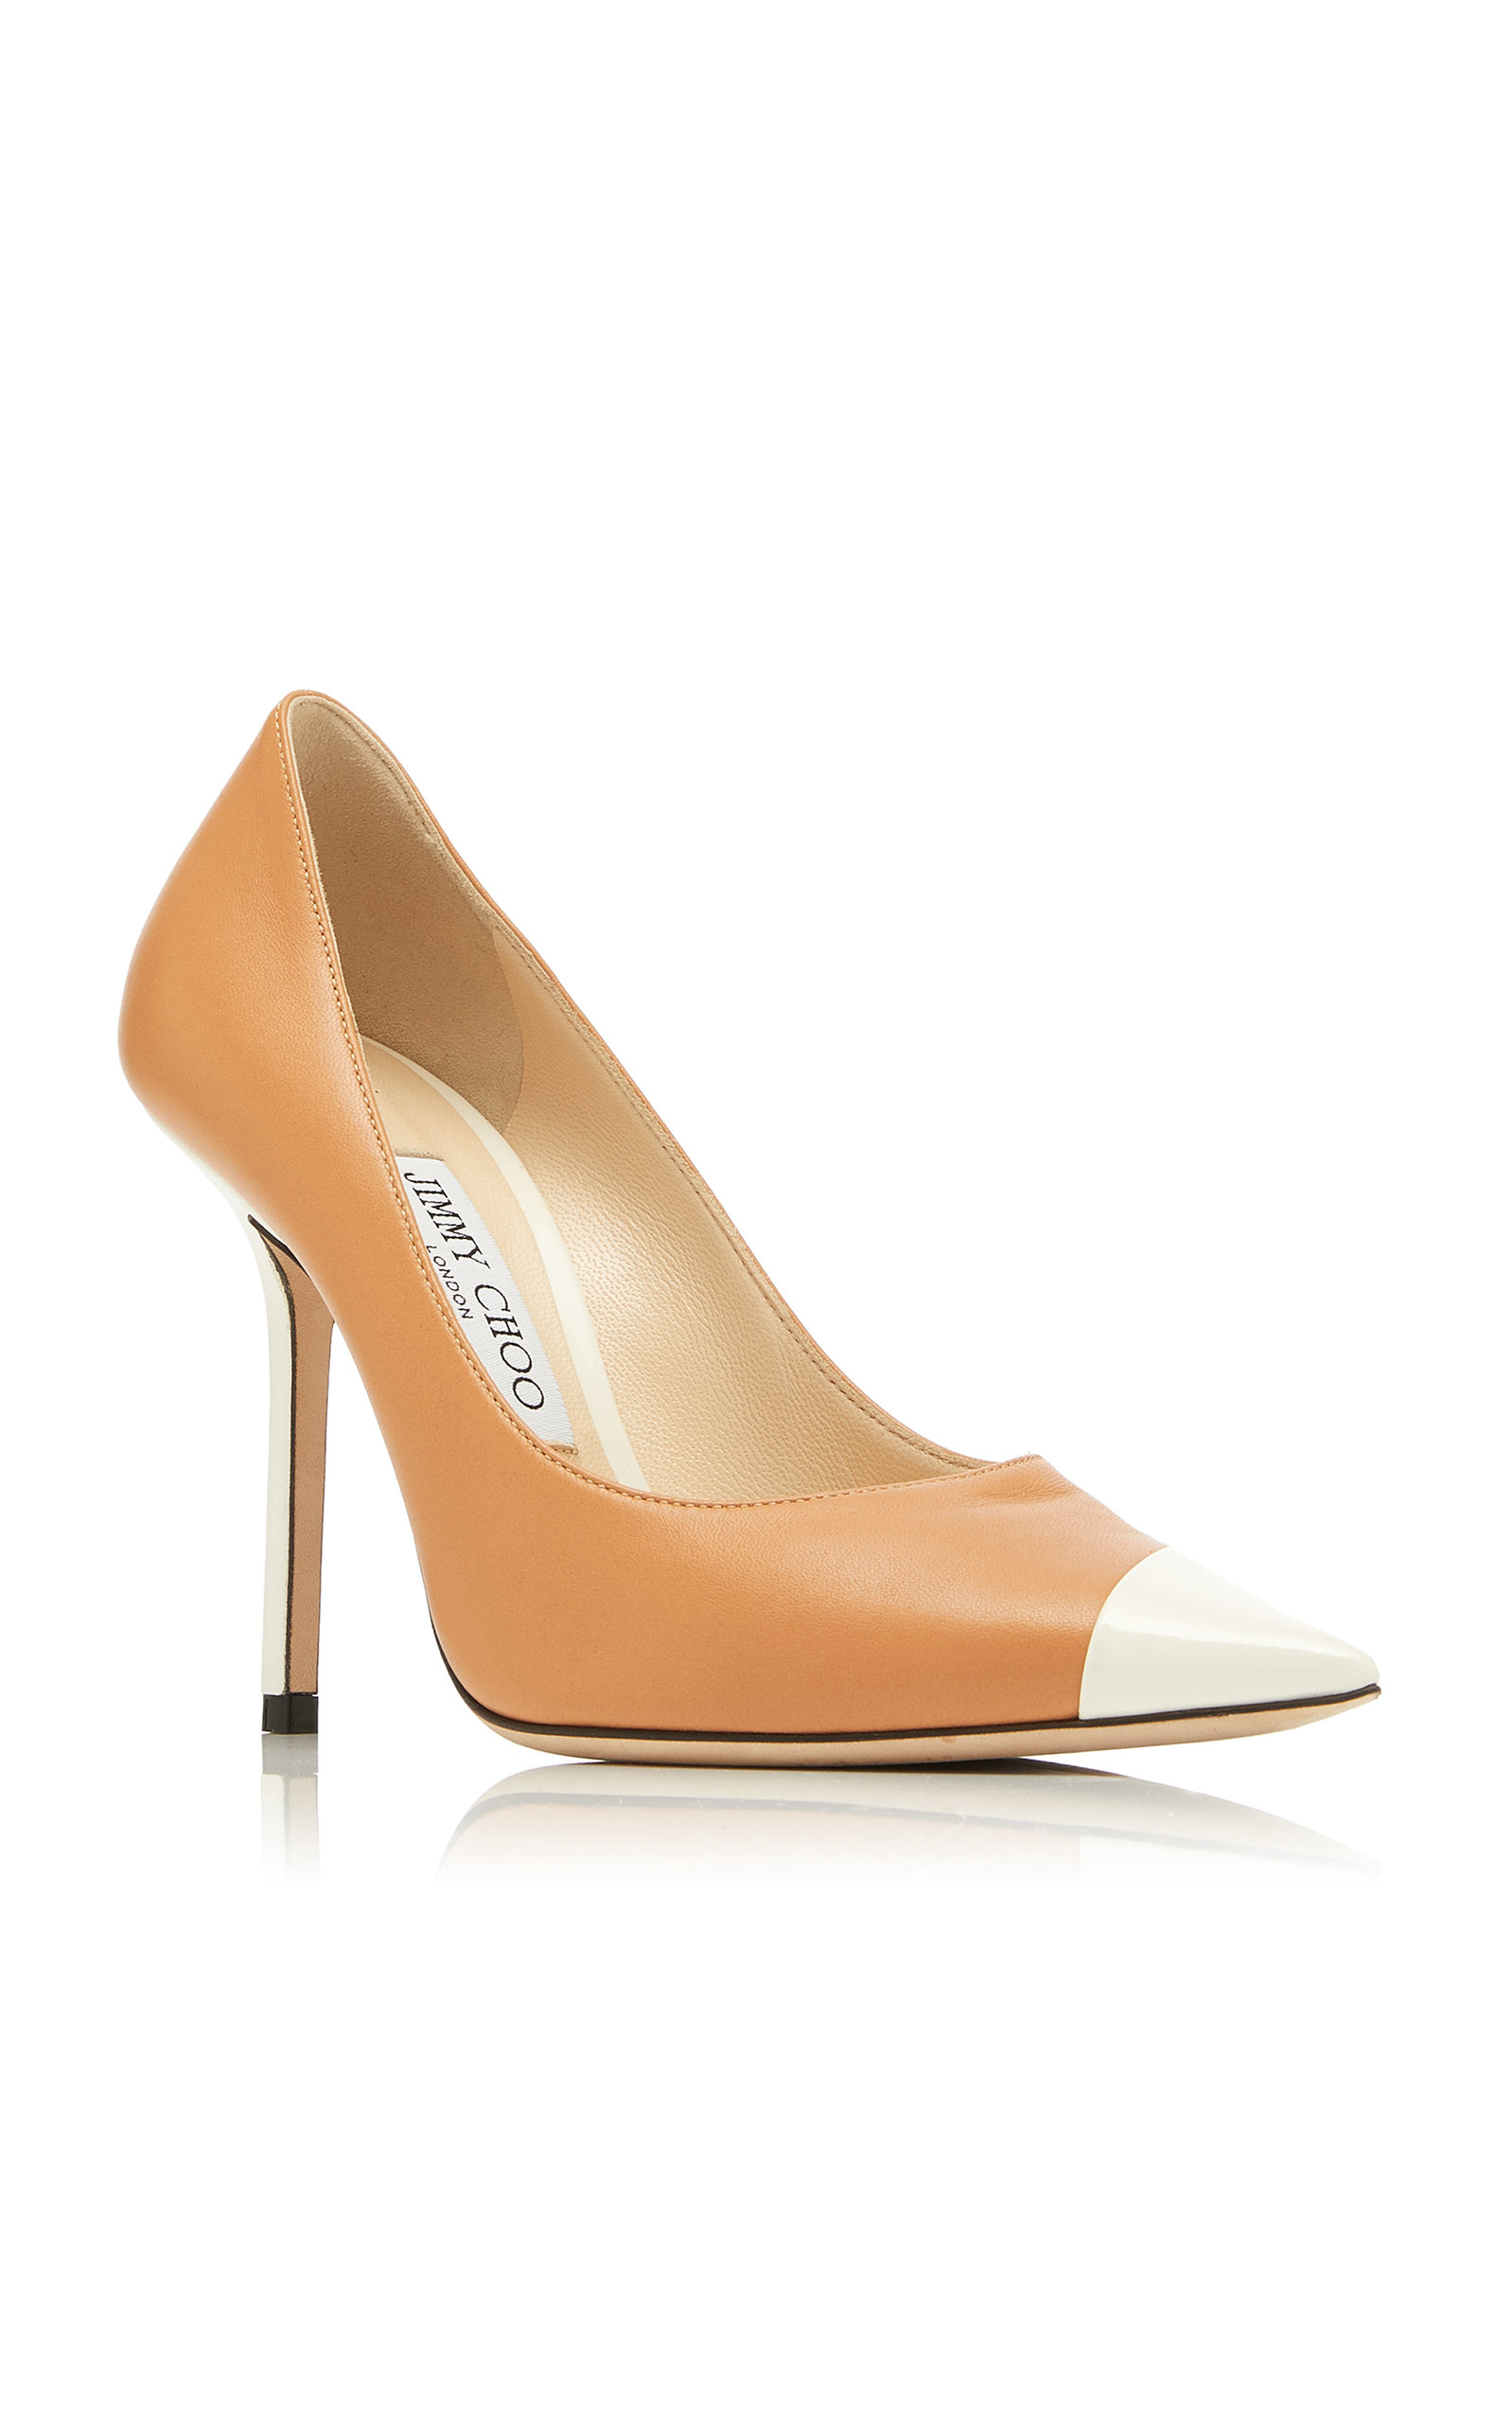 Jimmy Choo Pumps Love Two-Tone Leather Pumps